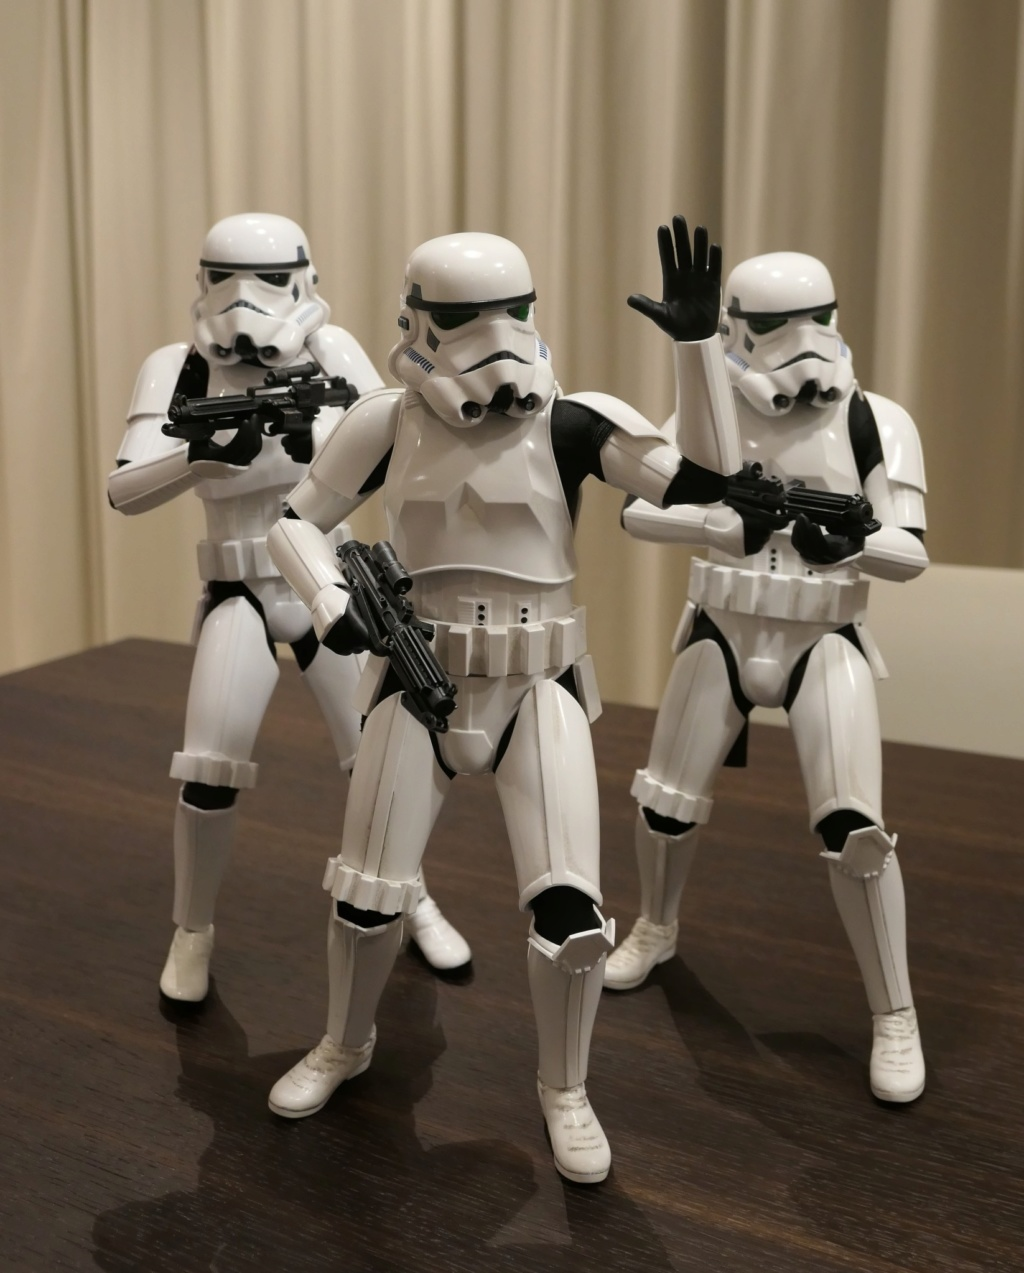 stormtrooper - NEW PRODUCT: HOT TOYS: STAR WARS STORMTROOPER (DELUXE VERSION) 1/6TH SCALE COLLECTIBLE FIGURE 2072sm10